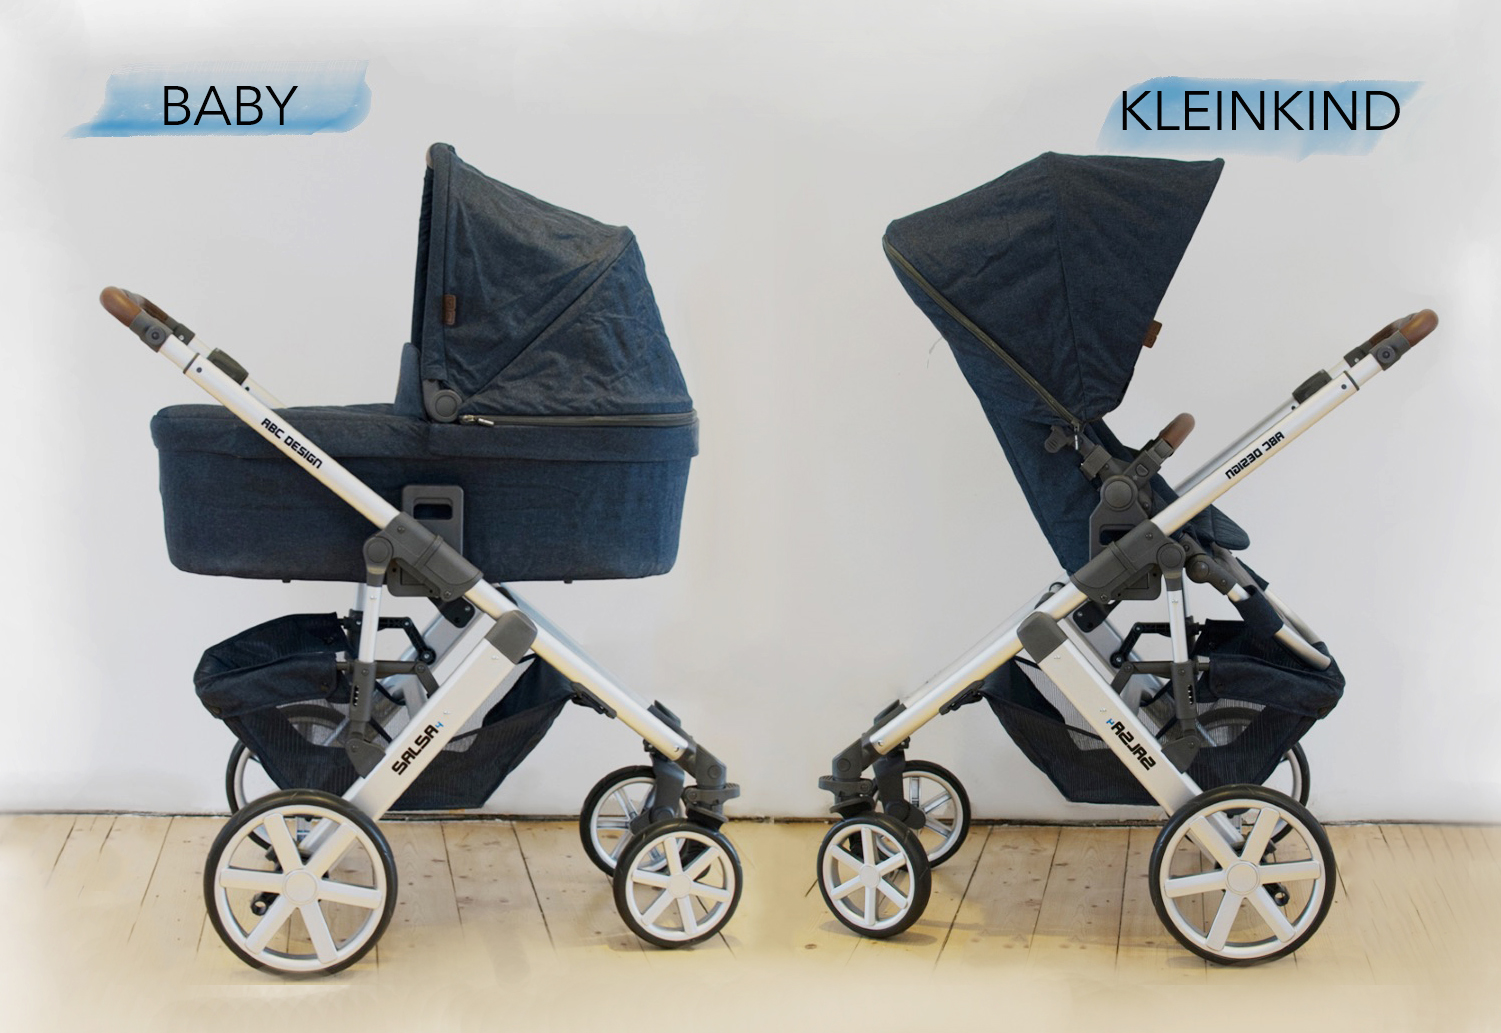 der abc design salsa 4 kombi kinderwagen im test. Black Bedroom Furniture Sets. Home Design Ideas